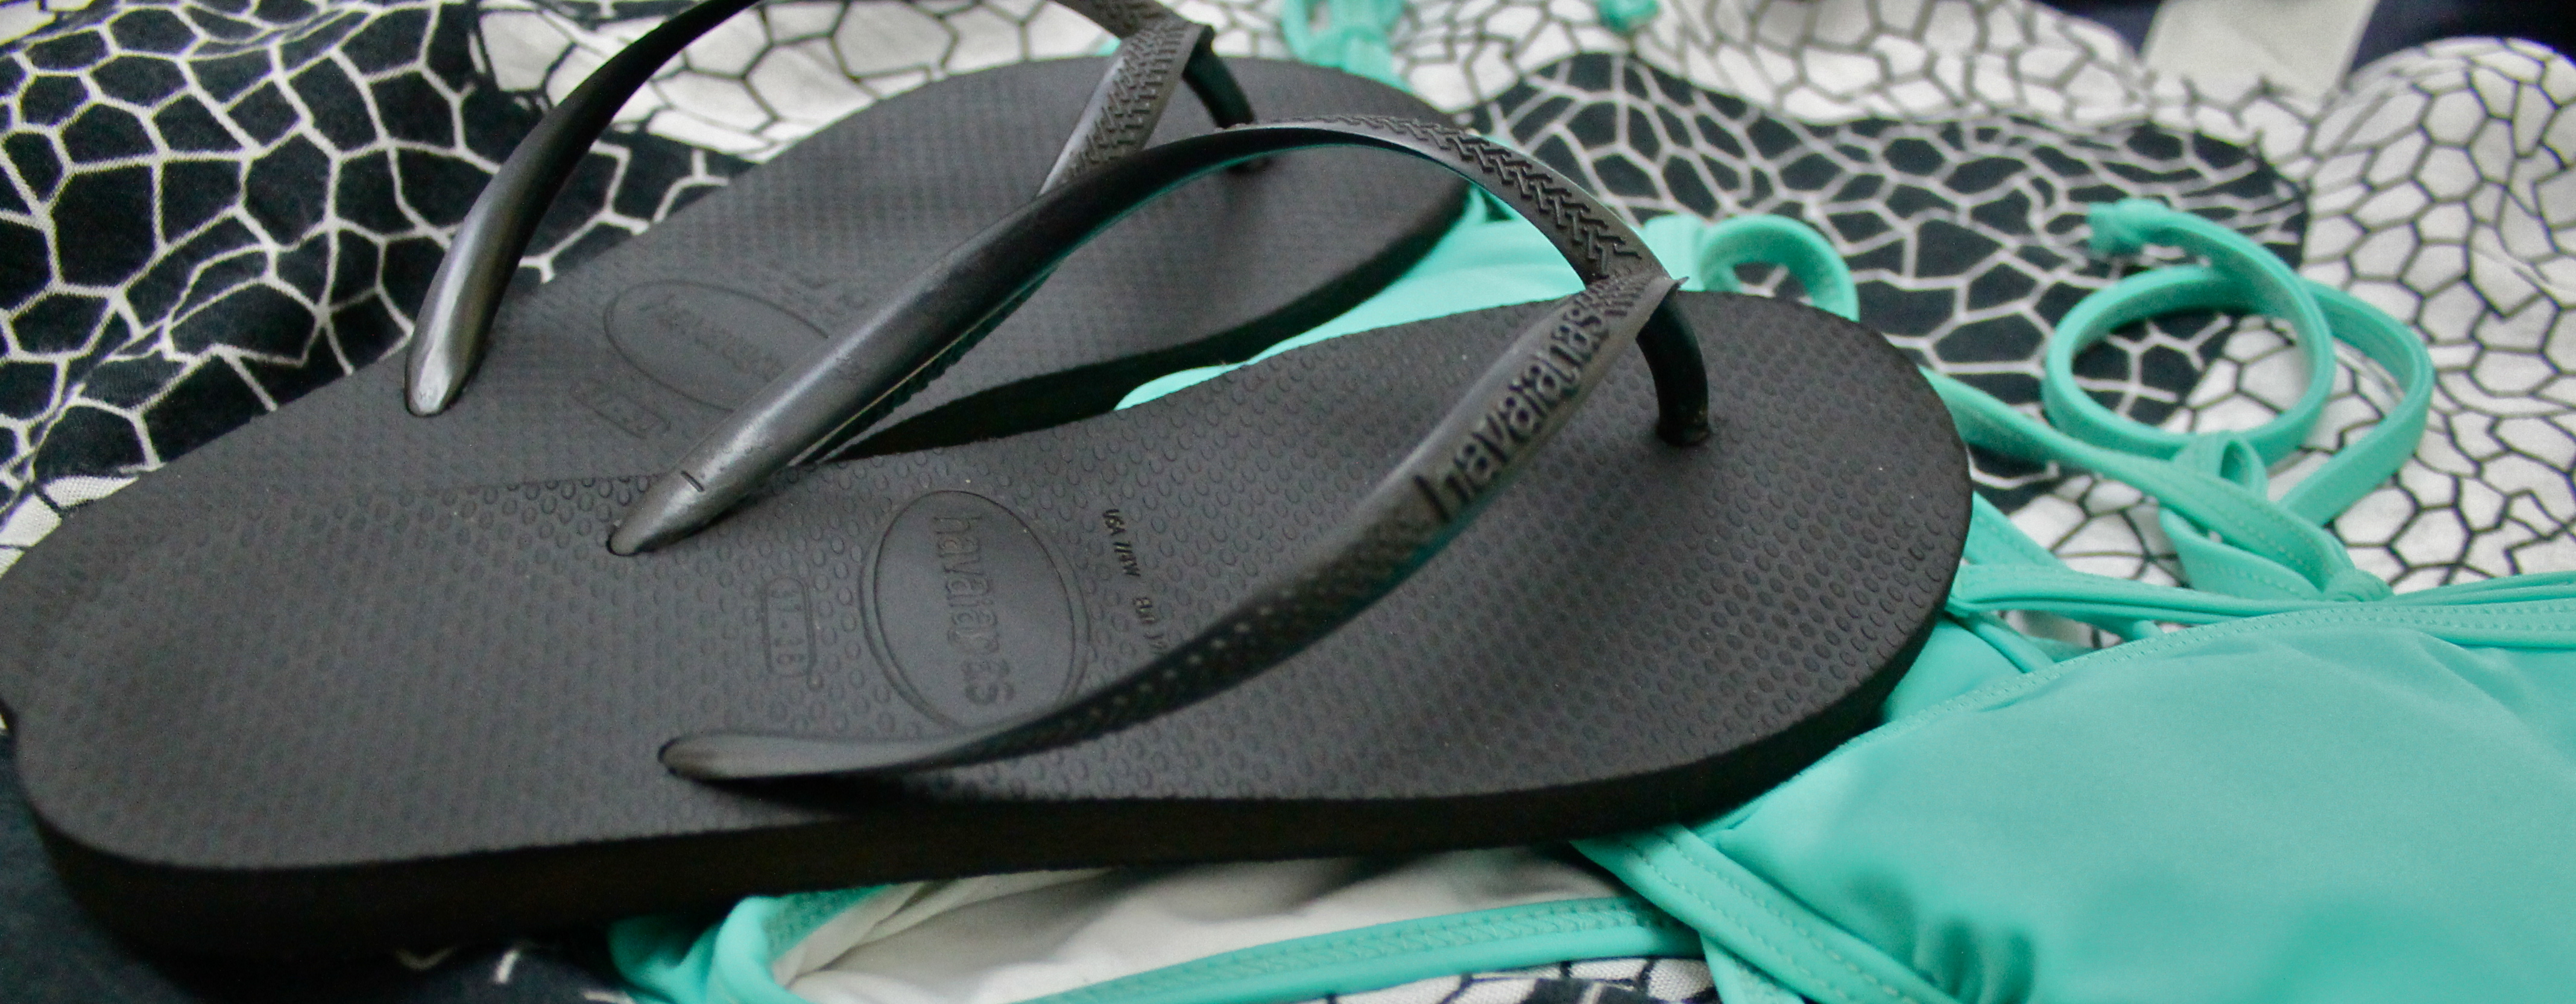 fe3047ded6c I finally made it to flip flop heaven. Havaiana s are Brazils most famous  flip flop brand and possibly the entire worlds. The options are pretty much  ...